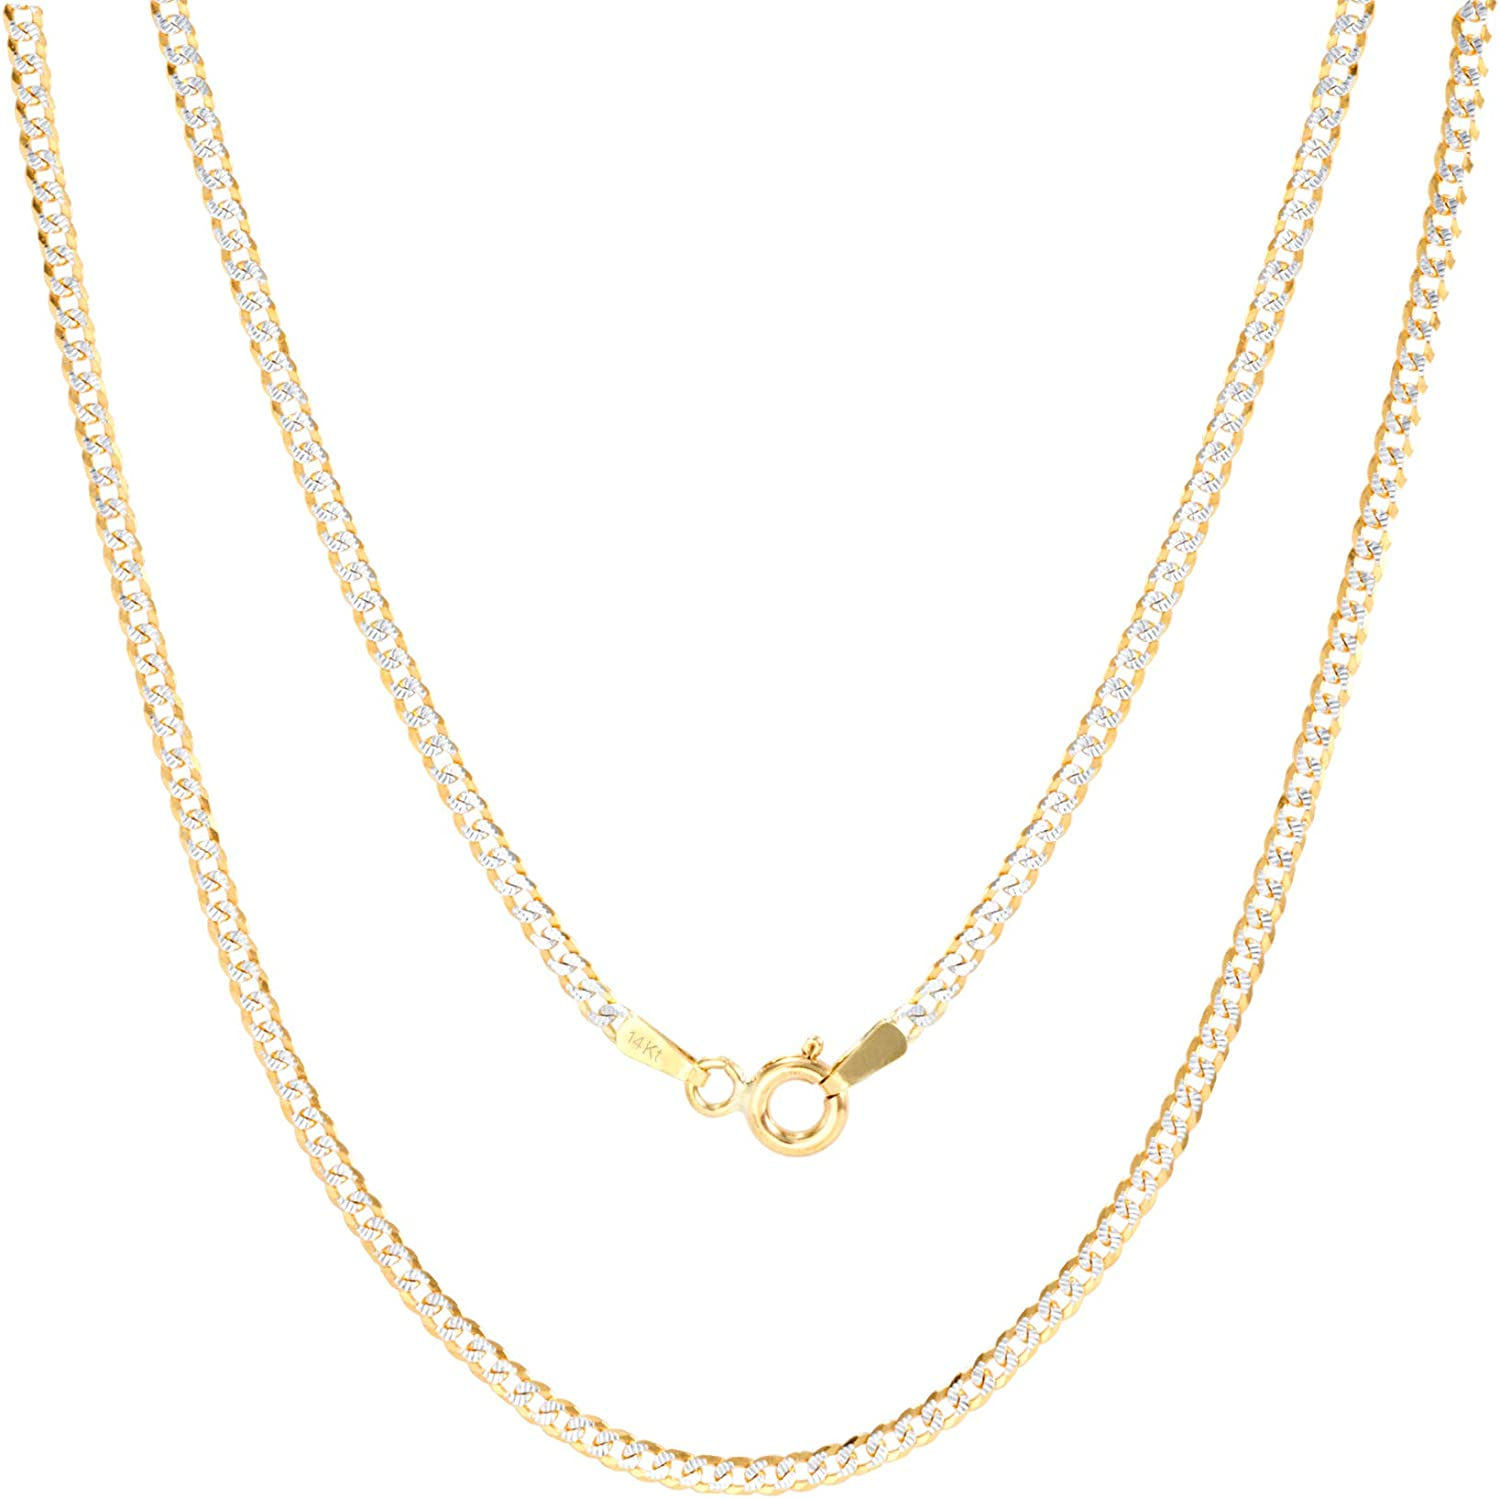 Nuragold 14k Yellow Gold Solid 2mm Cuban Chain Curb Link Diamond Cut Pave Two Tone Pendant Necklace Lobster Lock 16